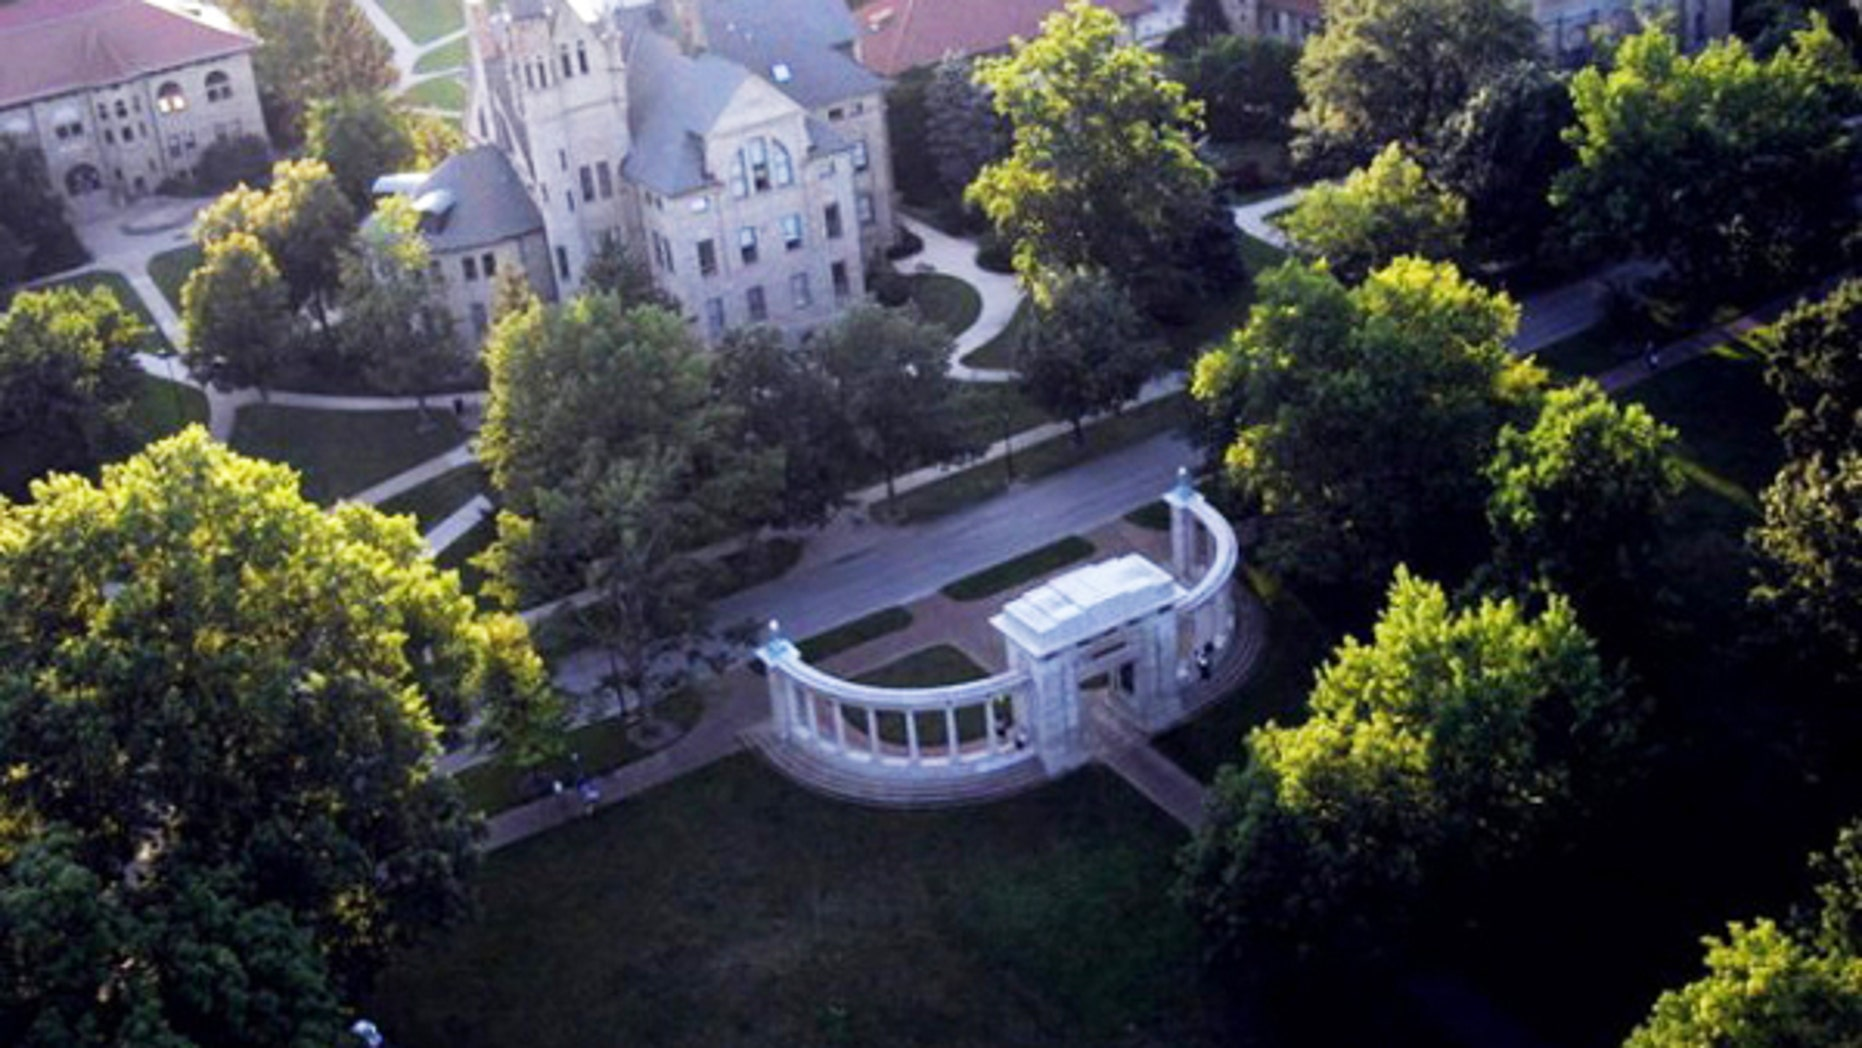 Nearly 200 Oberlin College alumni signed on to an open letter expressing concern of anti-Semitism at the school.